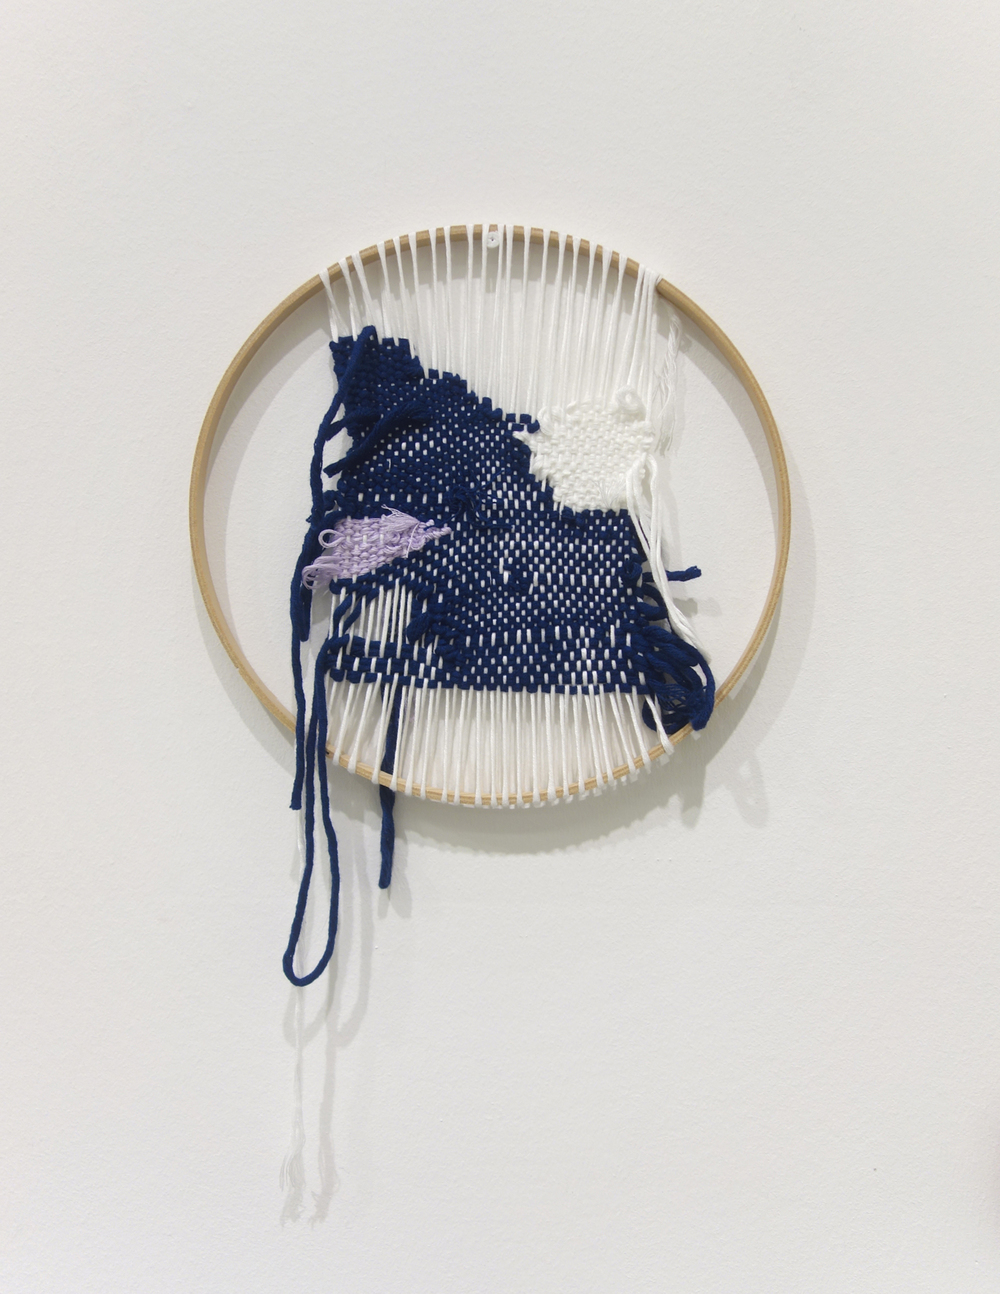 Izziyana Suhaimi  Cross Section of Bone VI  2015 Cotton thread woven on wooden hoop H33 x W27 cm